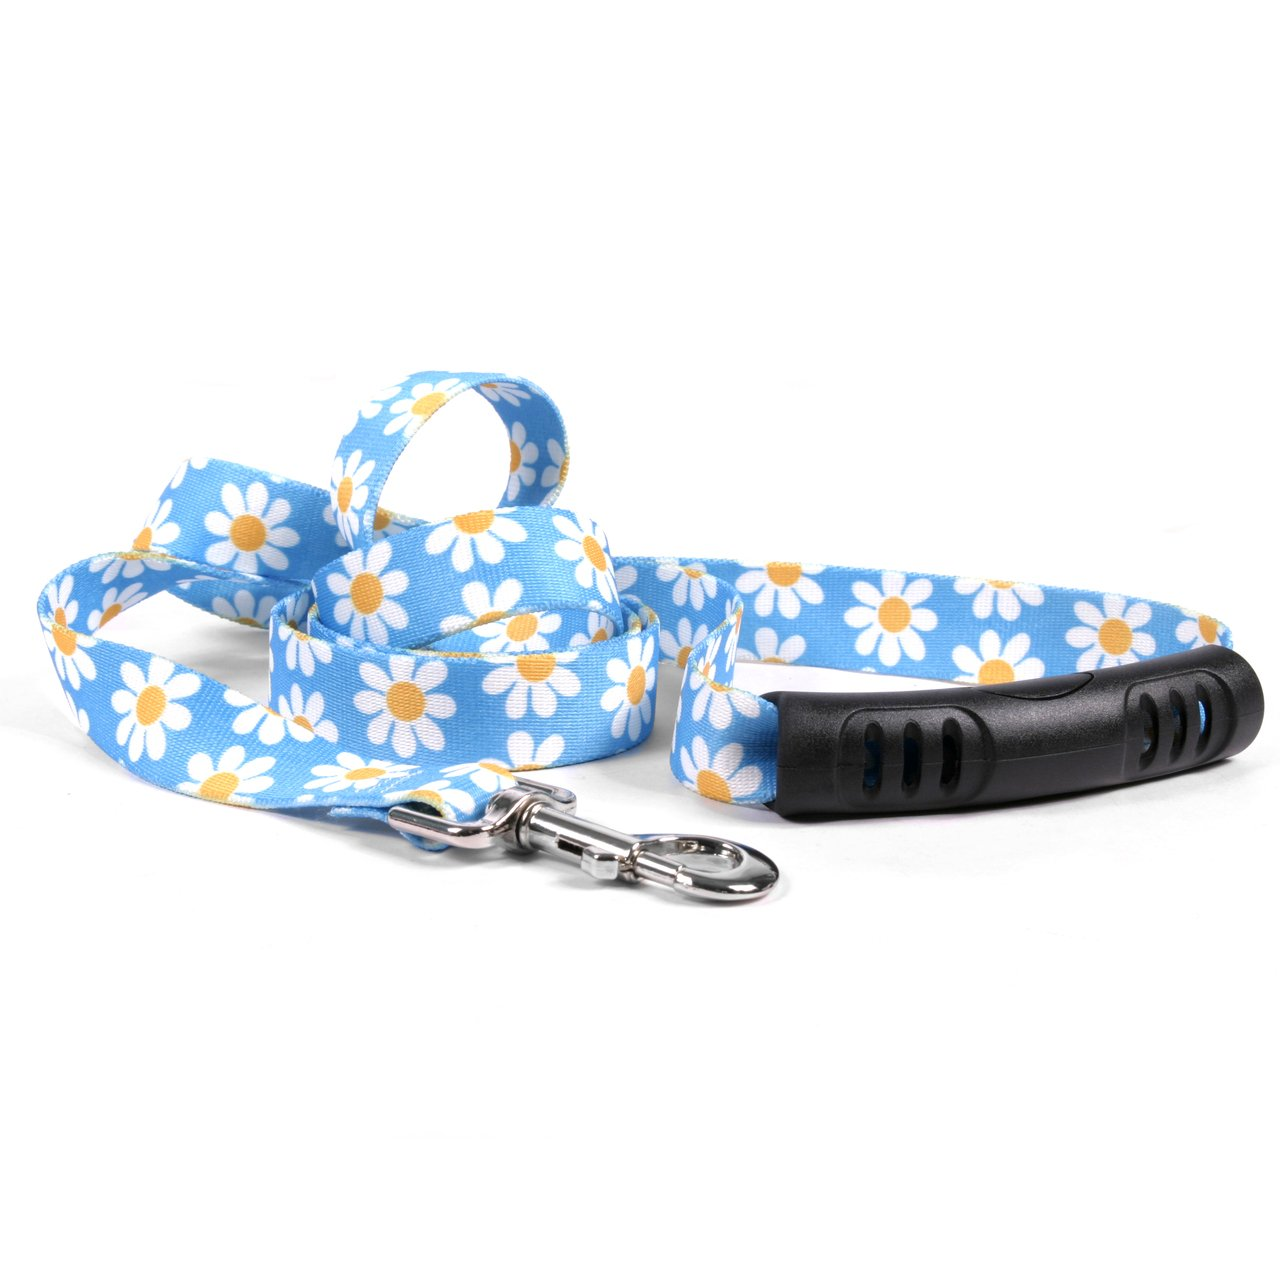 Yellow Dog Design Blue Daisy Ez-Grip Dog Leash with Comfort Handle 1'' Wide and 5' (60'') Long, Large by Yellow Dog Design